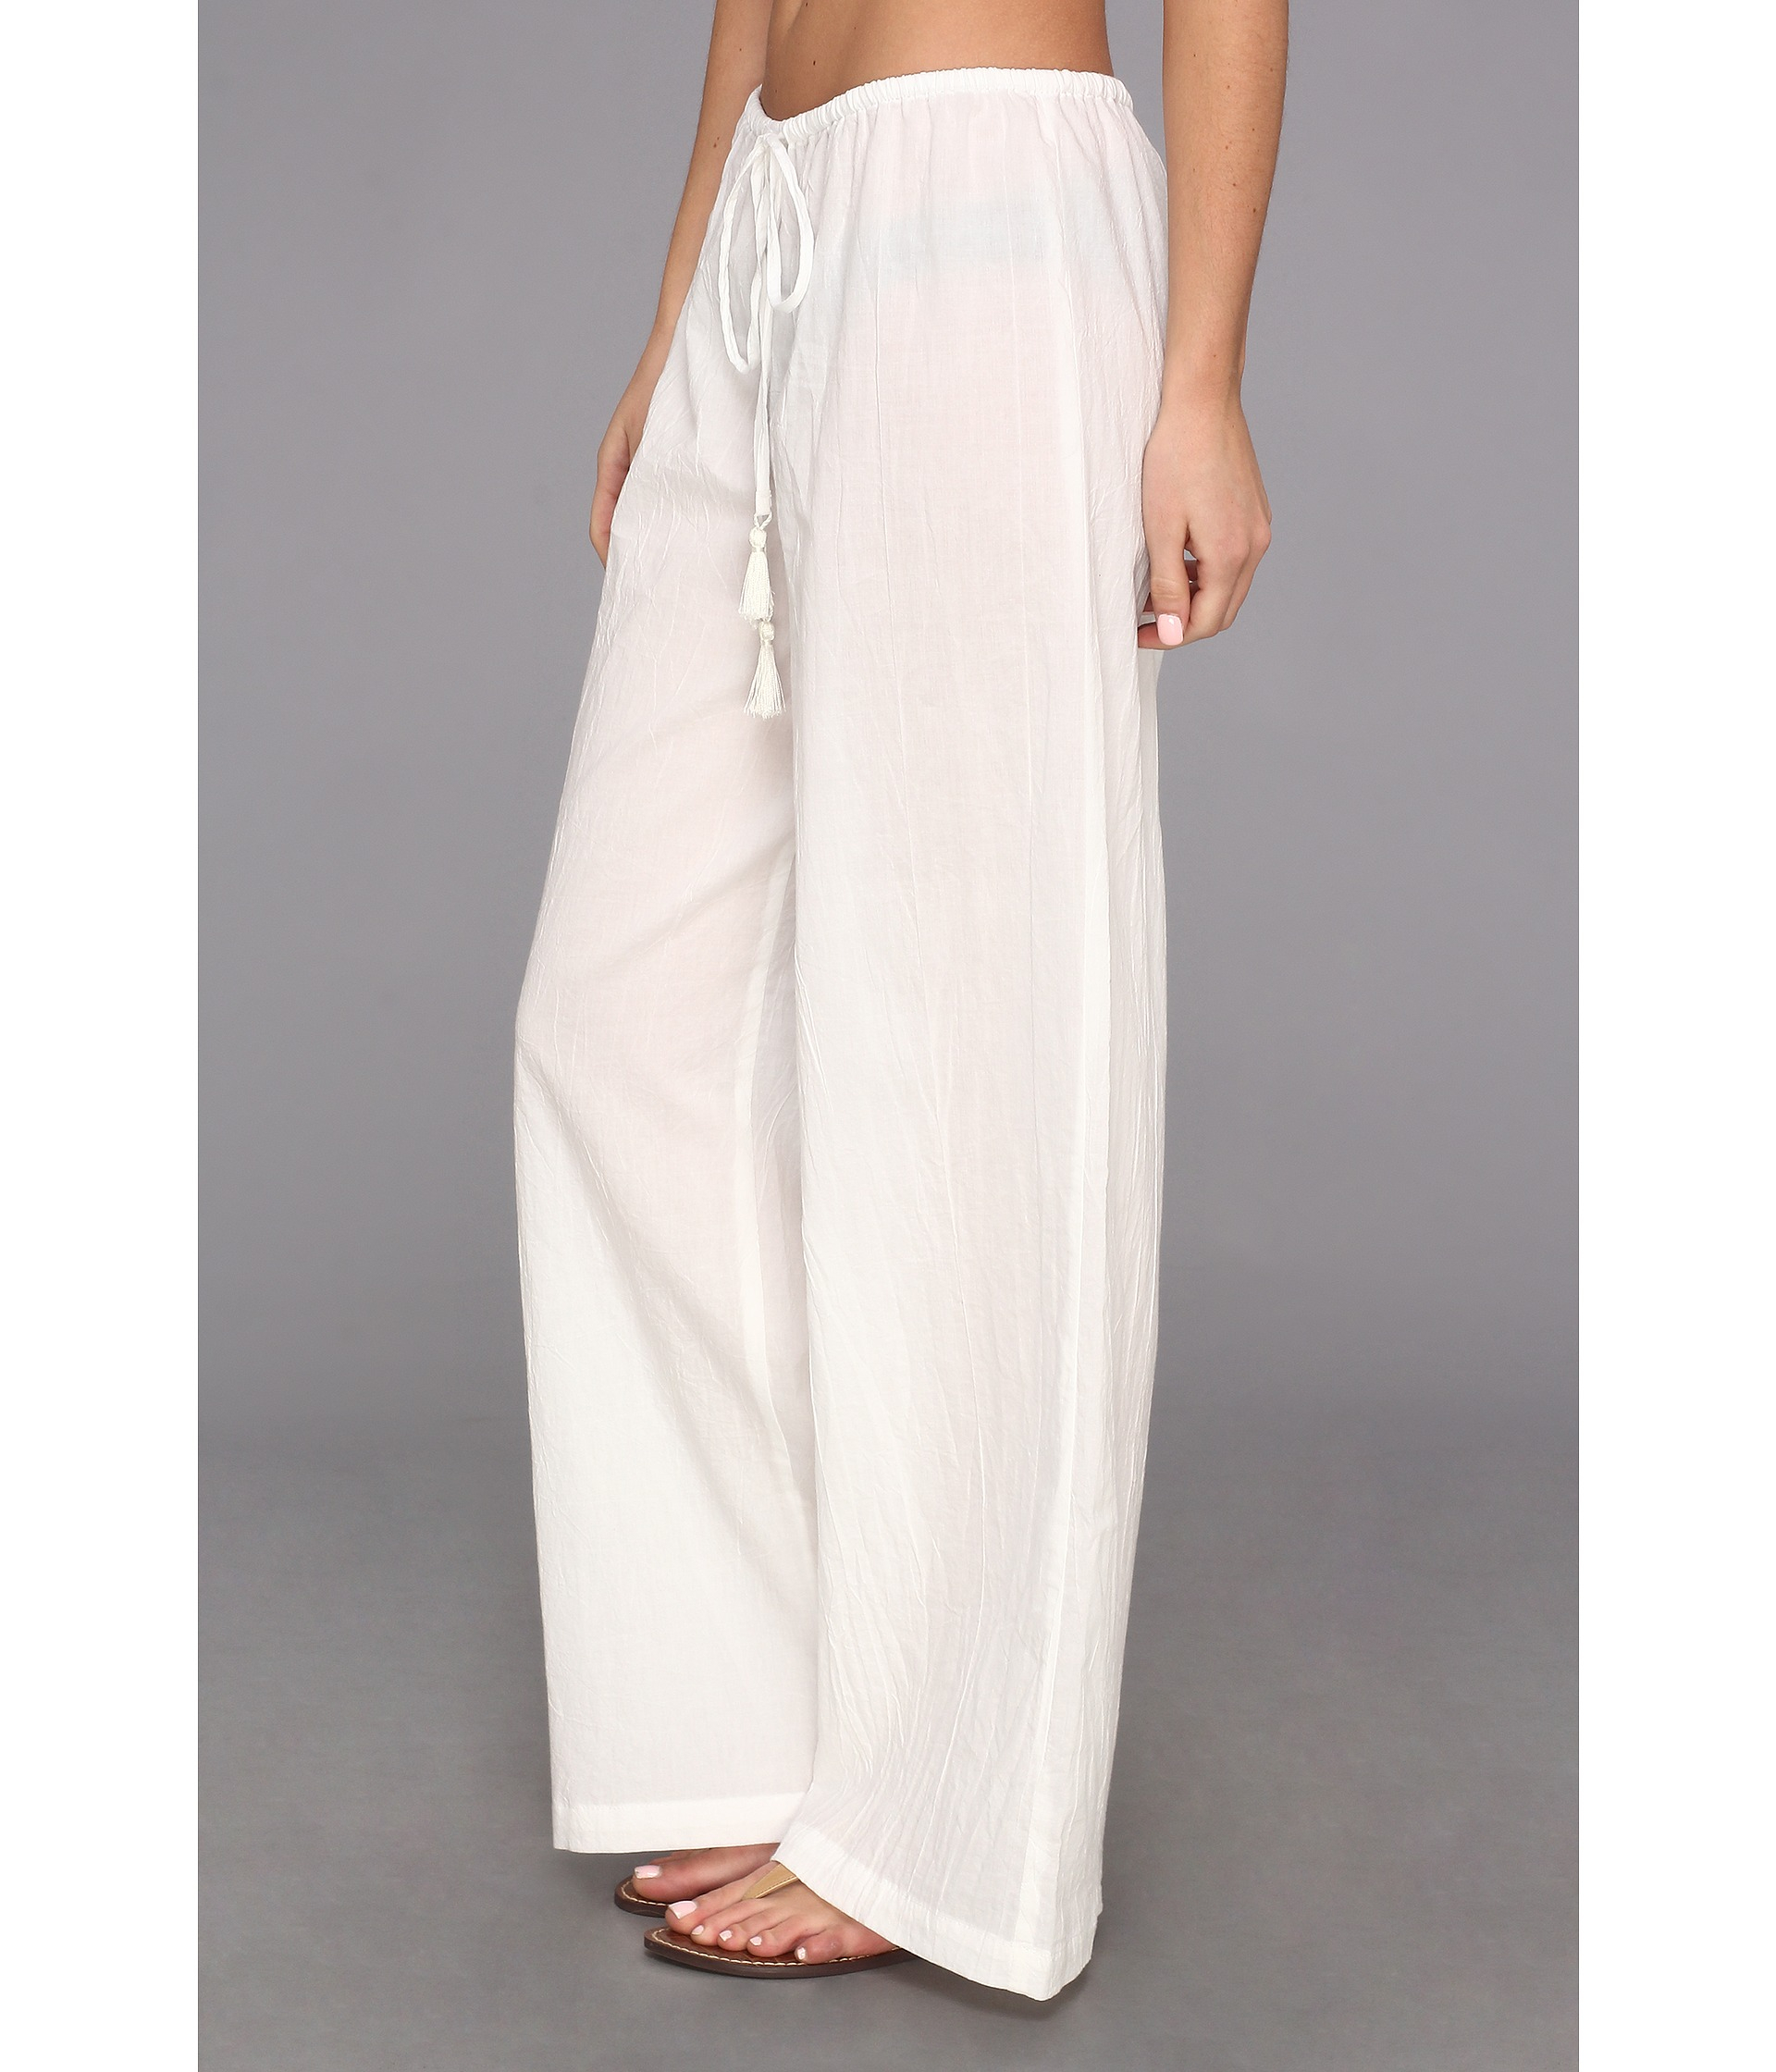 c967d372 Tommy Bahama Crinkle Cotton Drawstring Long Pant W Tassels in White - Lyst